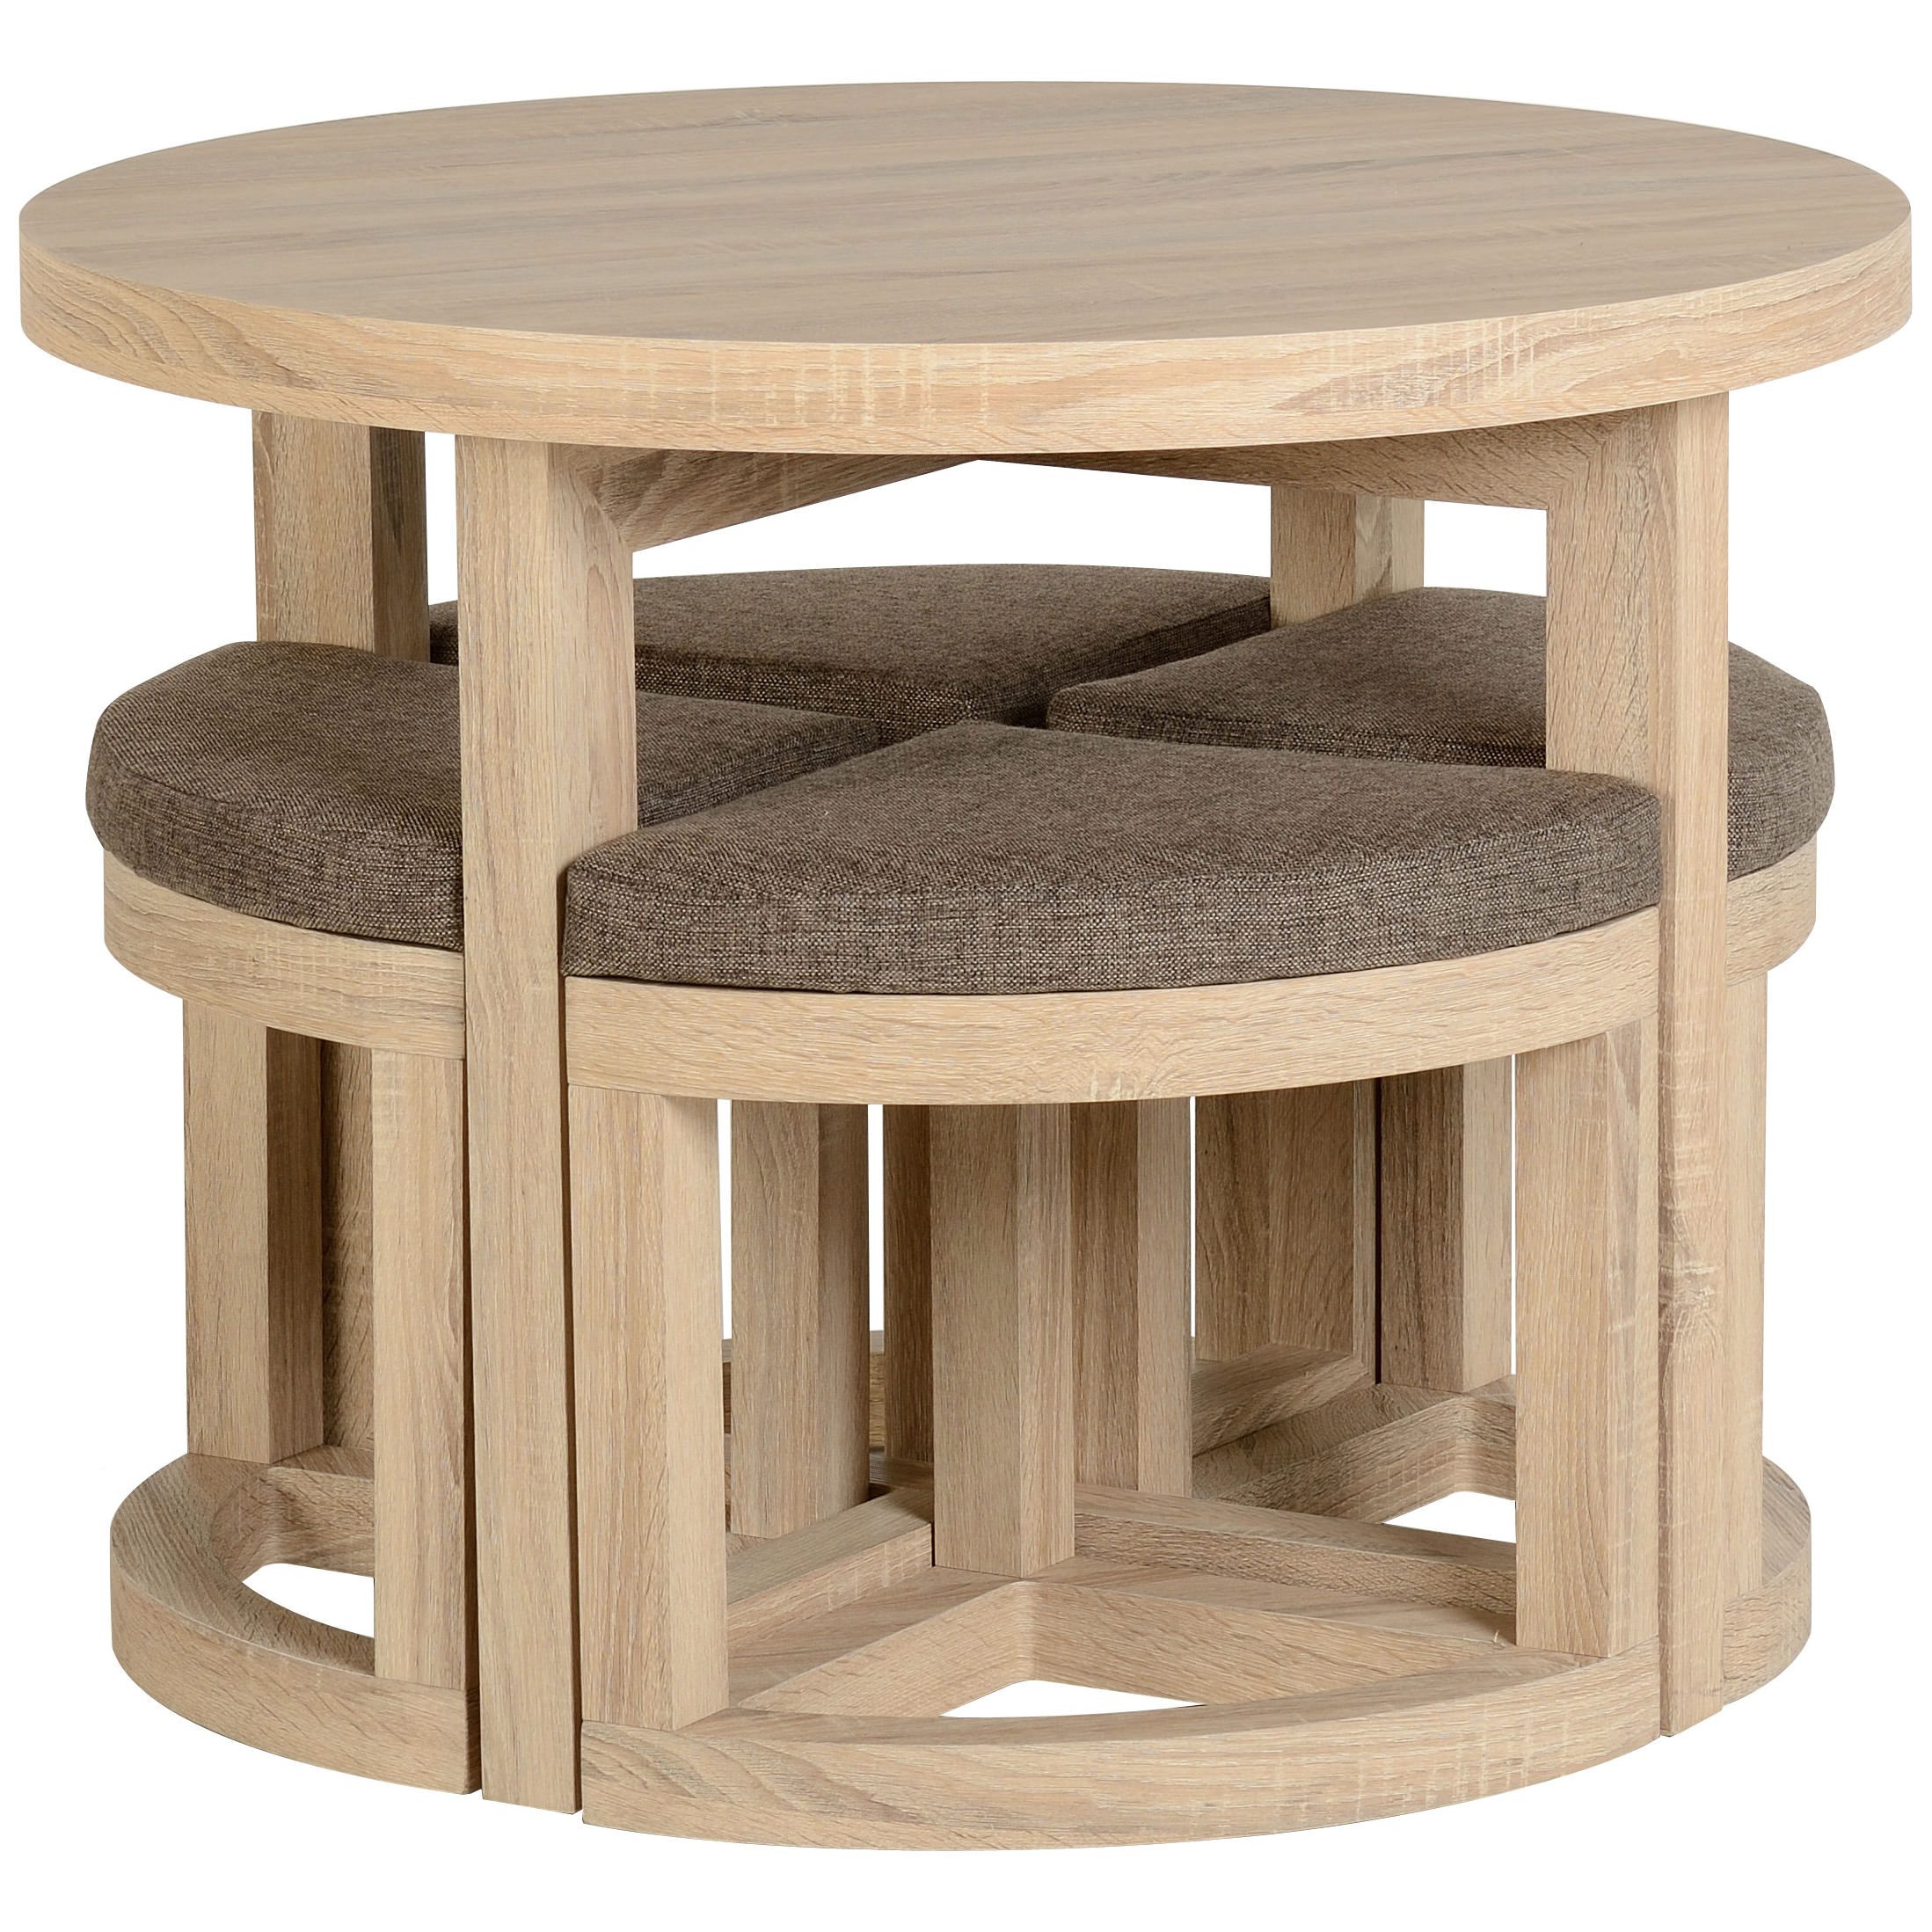 Round Oak Table And Chairs: Sonoma Oak Veneer Round Stowaway Dining Table And Chair